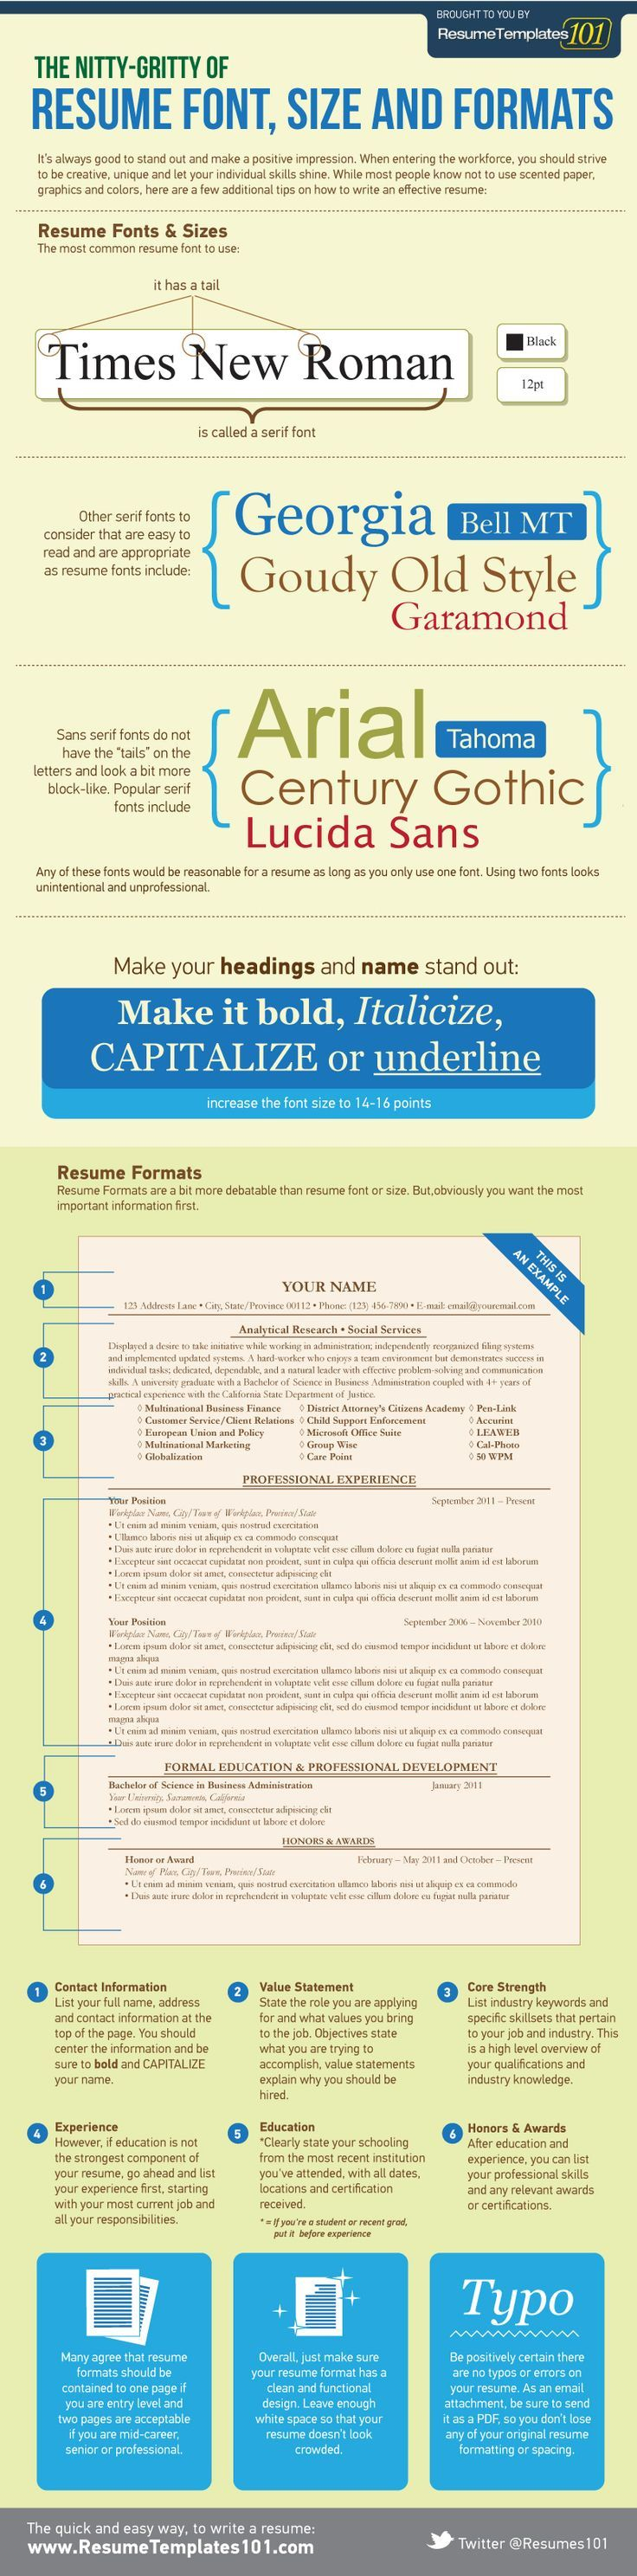 Font-Size-for-Resumes